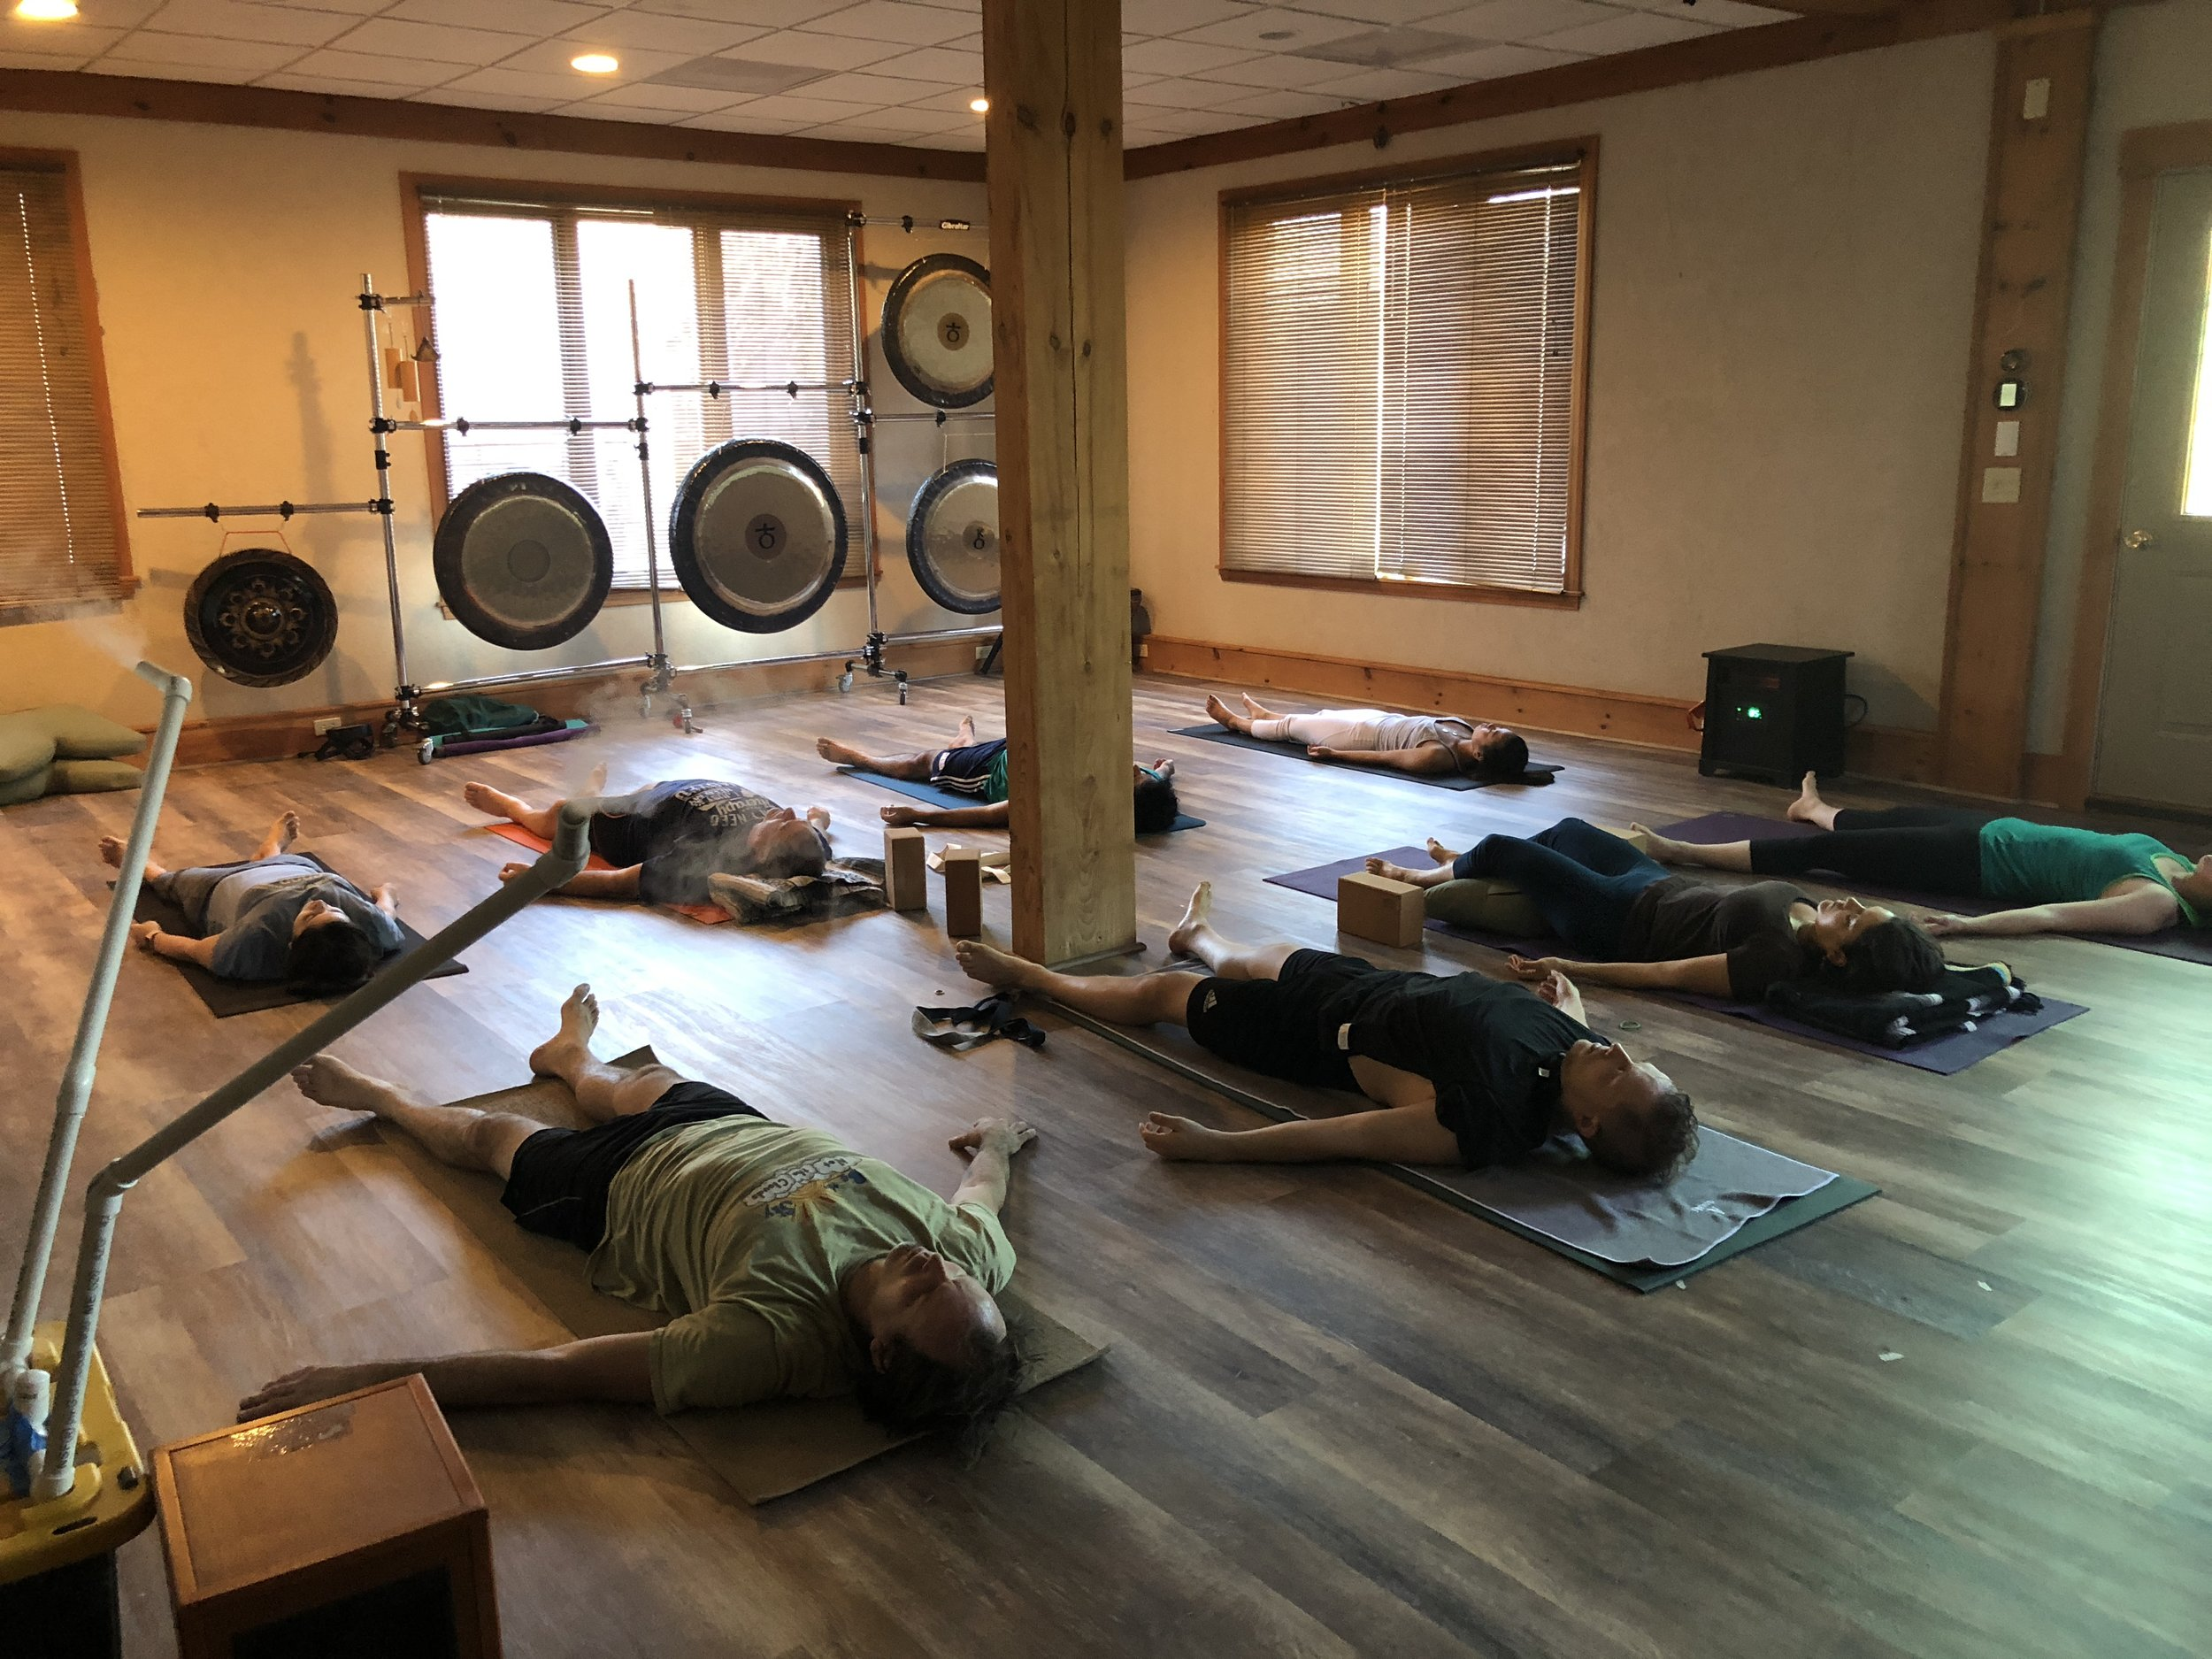 Sound Therapy w/ Symphonic Gong - Relax with us on Saturday evening from 6:30-8:00pm as you enjoy the soothing sounds of the symphonic gongs and singing bowls, and pranayama exercises to settle the mind and connect with the breath.No previous experience necessary.No registration required.